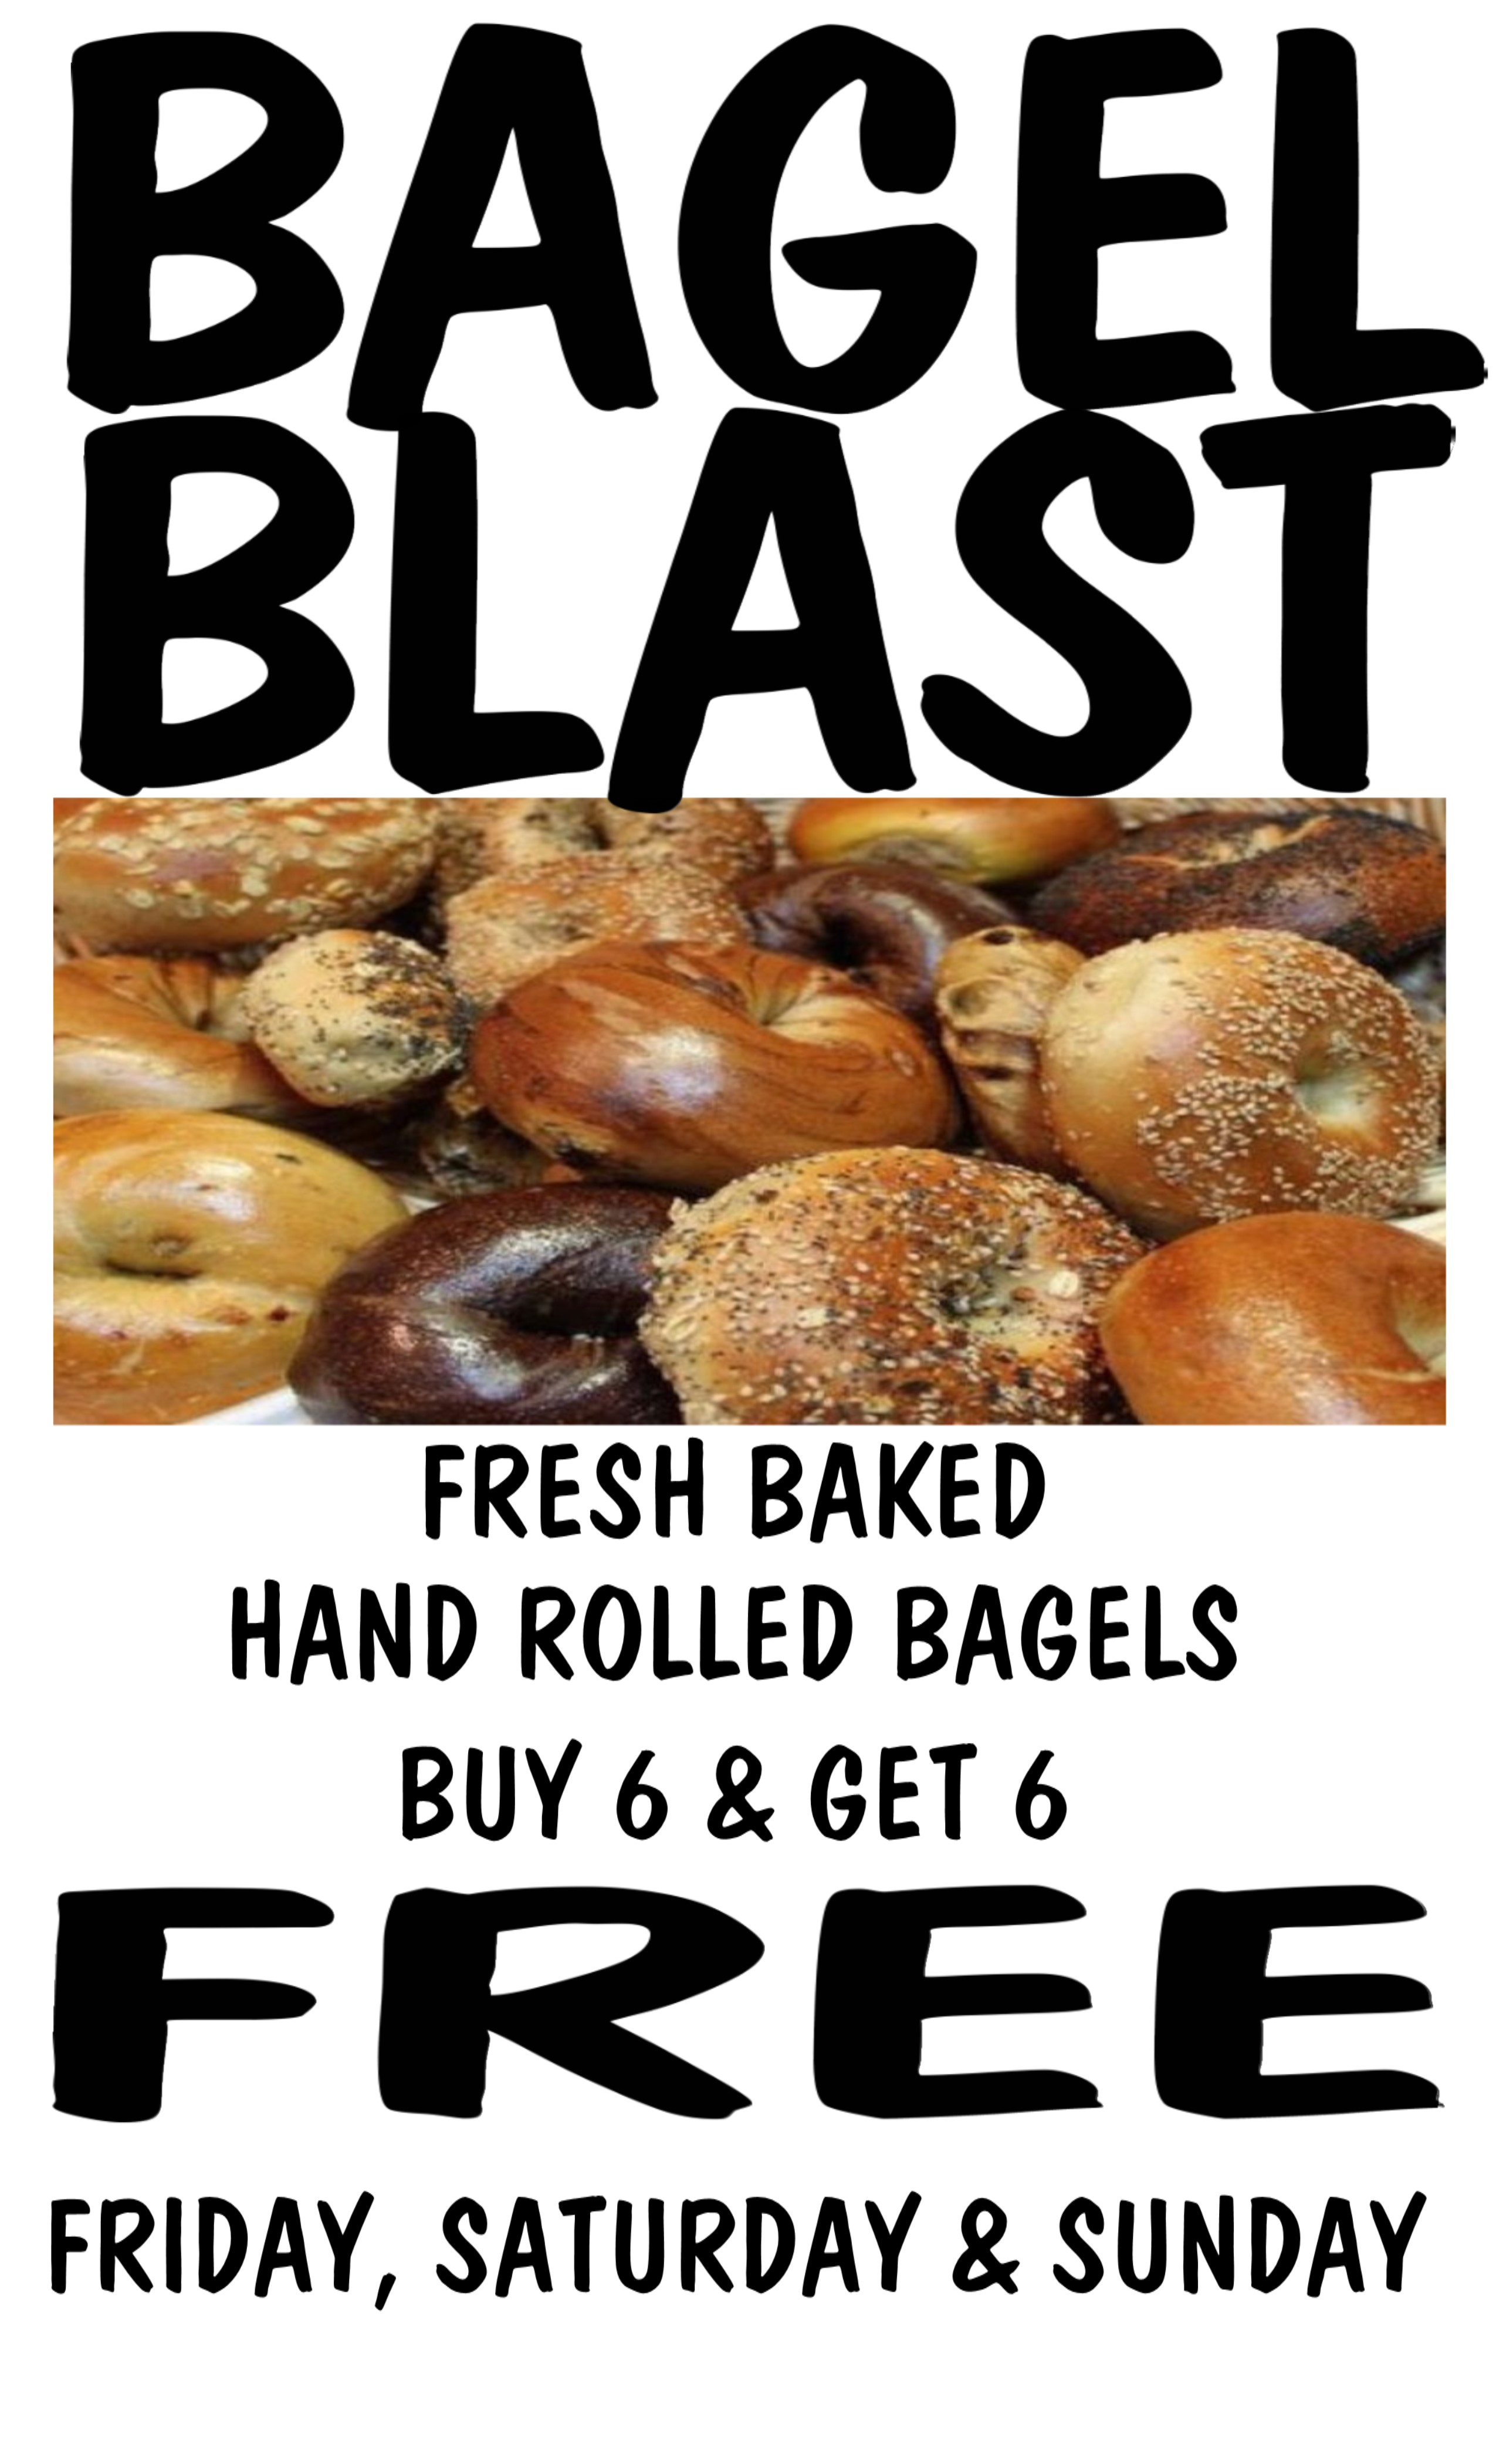 Bagel Blast - Fresh Baked Hand Rolled Bagels Buy 6 & Get 6 Free. Friday, Saturday & Sunday